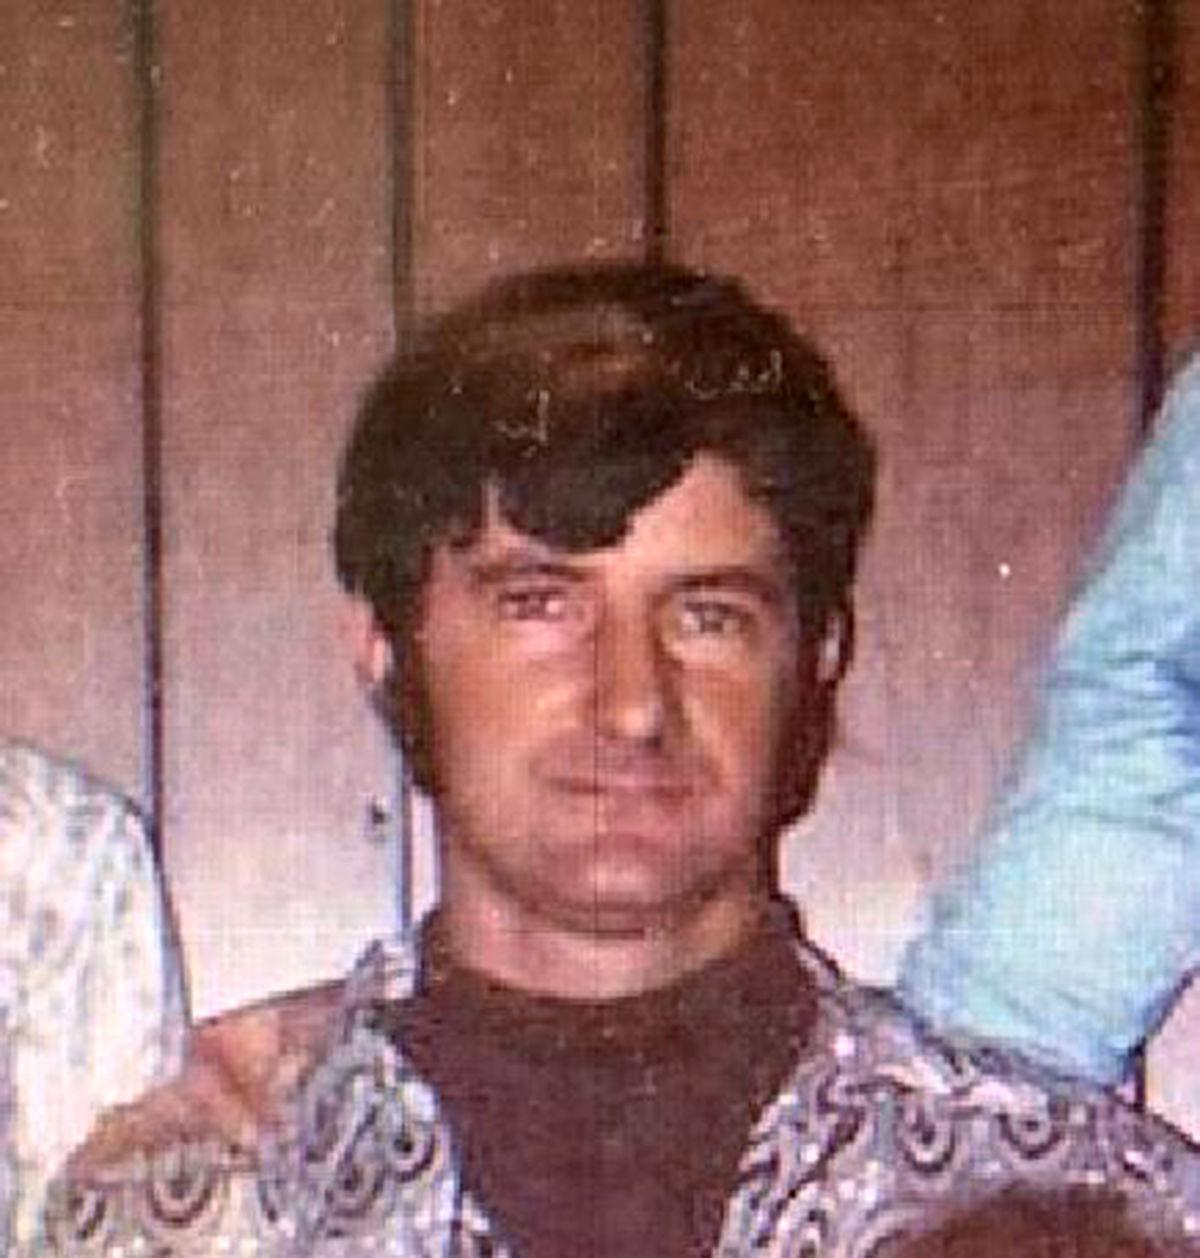 Richard Davis in 1973